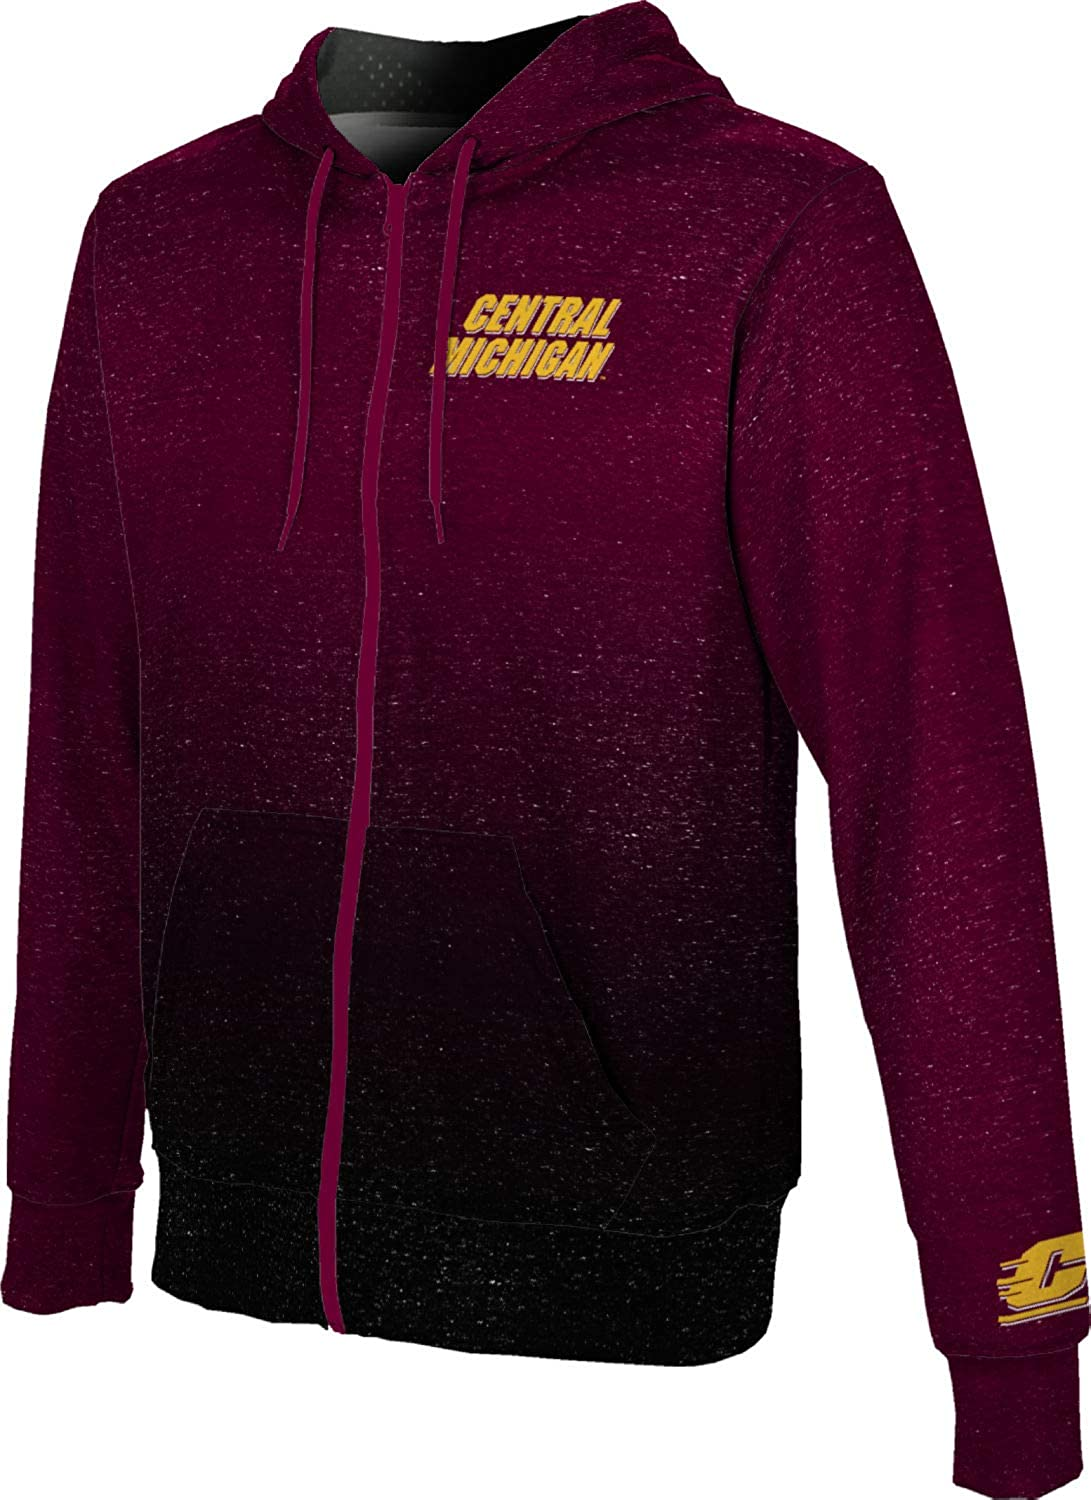 Structure Central Michigan University Boys Pullover Hoodie School Spirit Sweatshirt